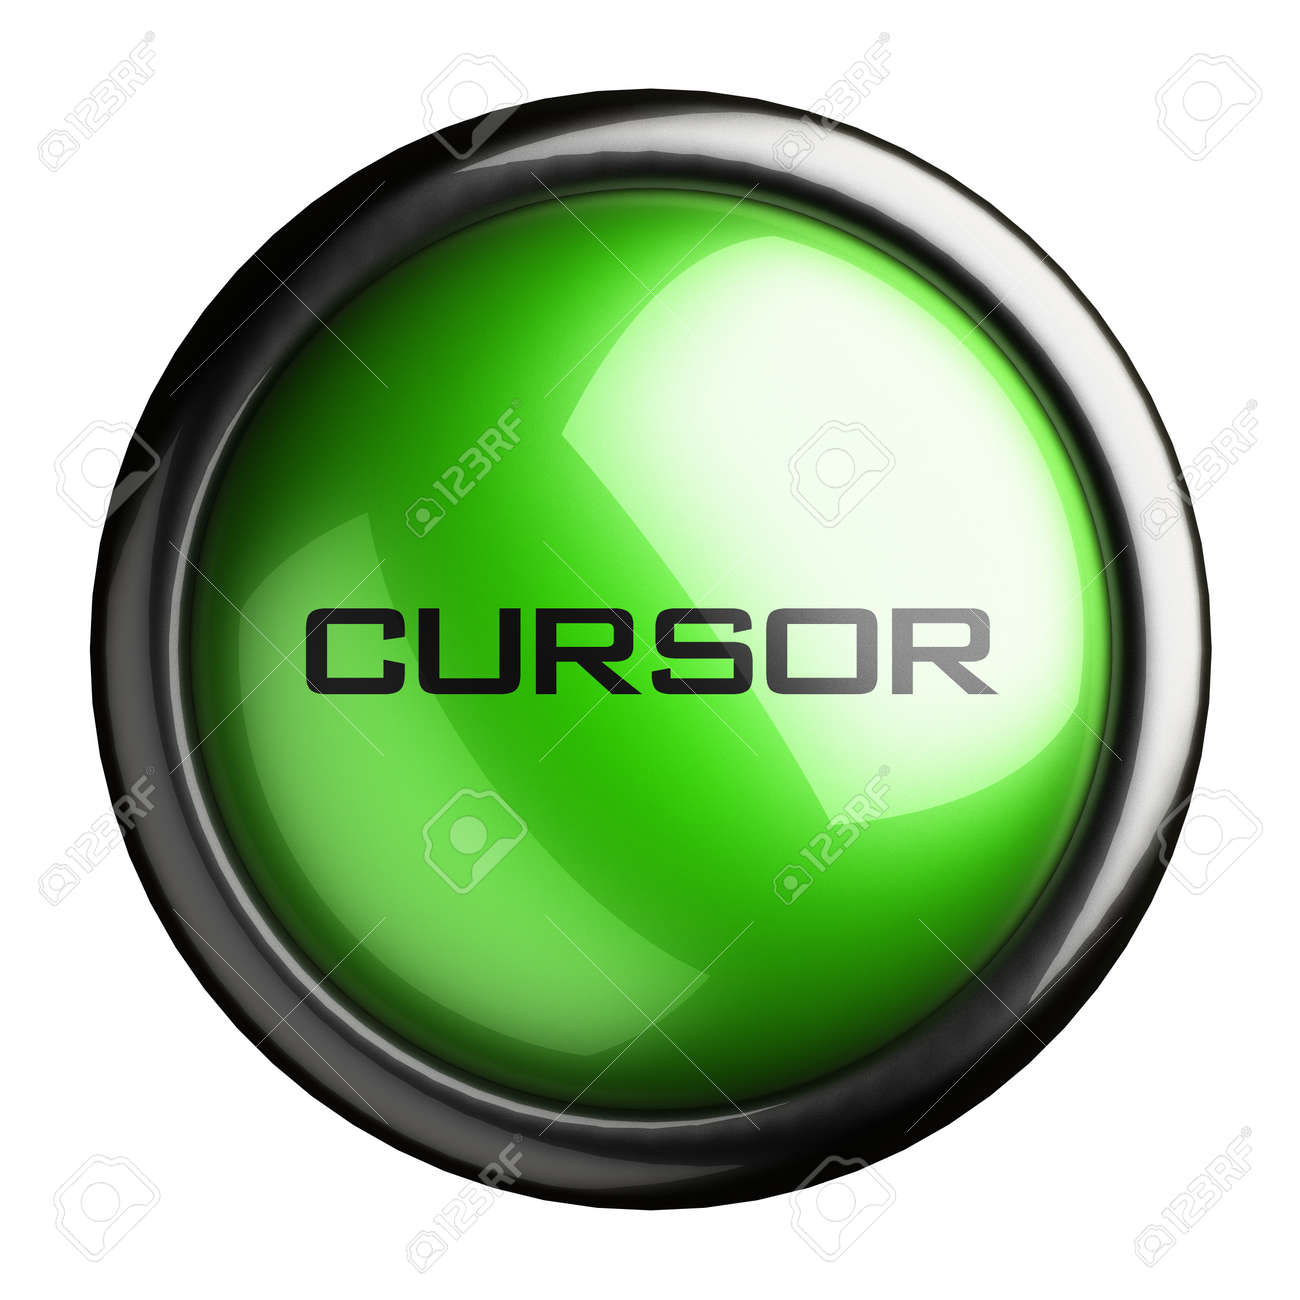 Word on the button Stock Photo - 16310517